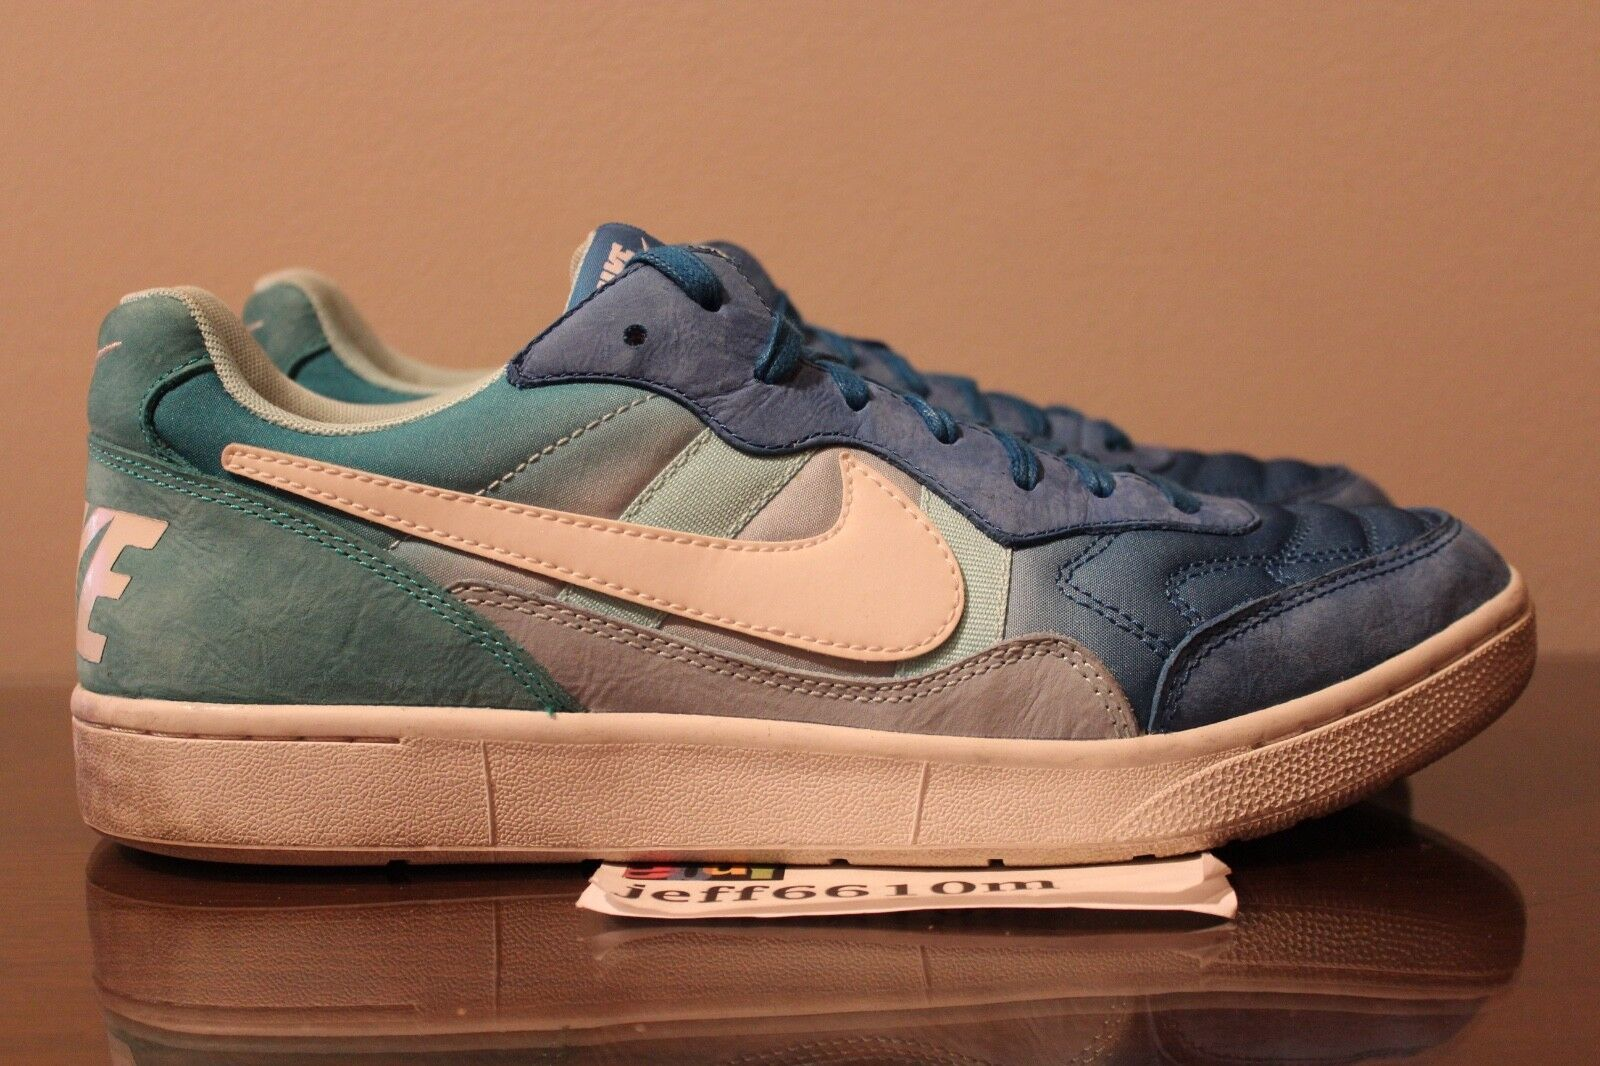 2014 Nike NSW Tiempo '94 TXT Military Blue Glacier Ice  Comfortable Comfortable and good-looking